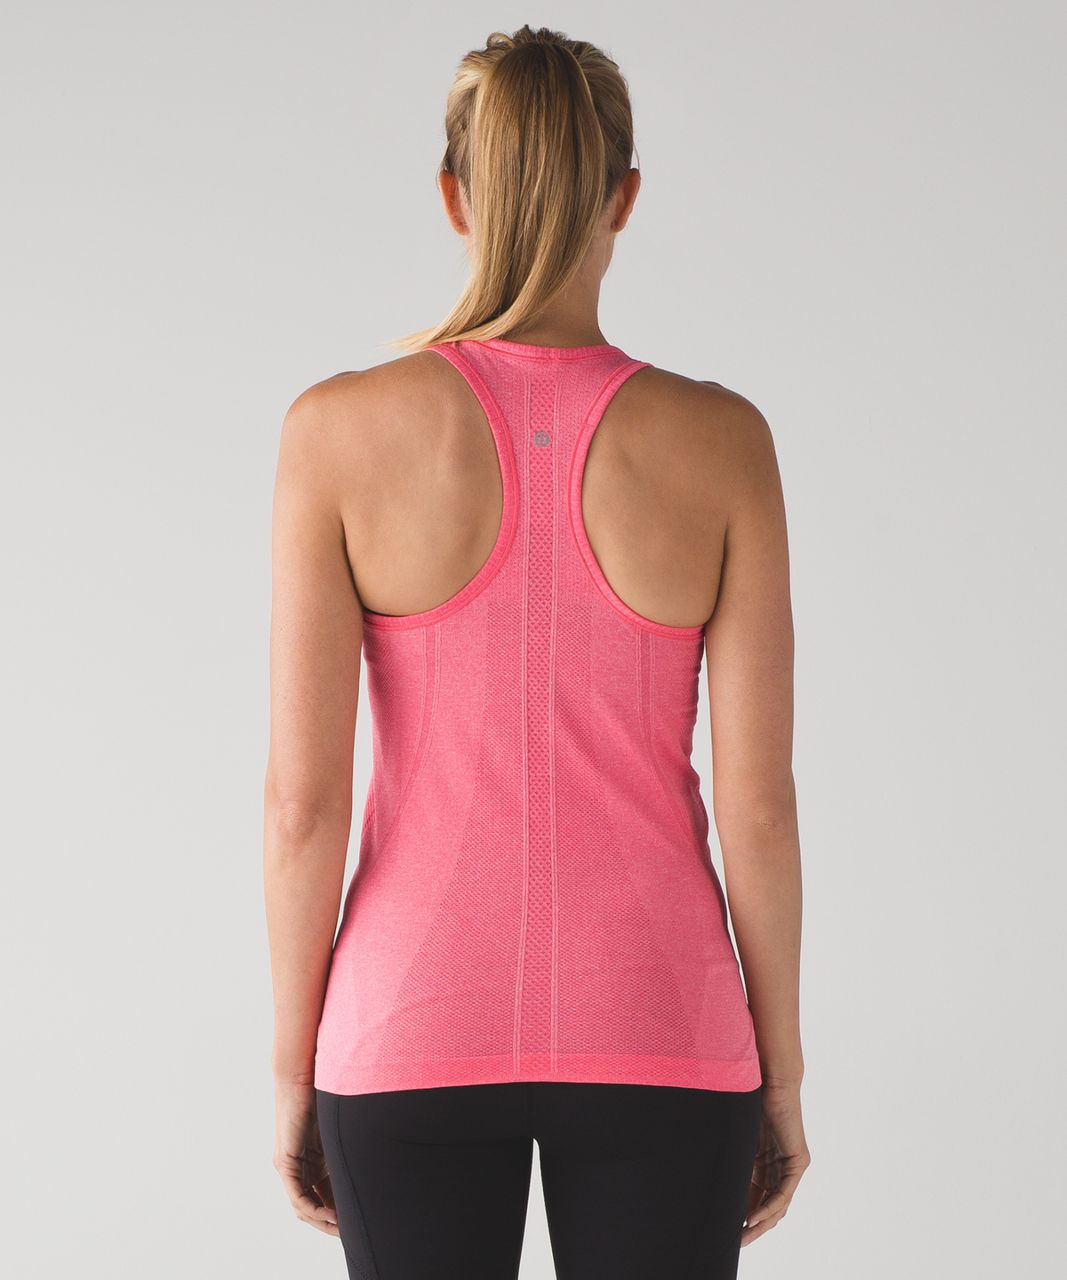 Lululemon Swiftly Tech Racerback - Heathered Lush Coral